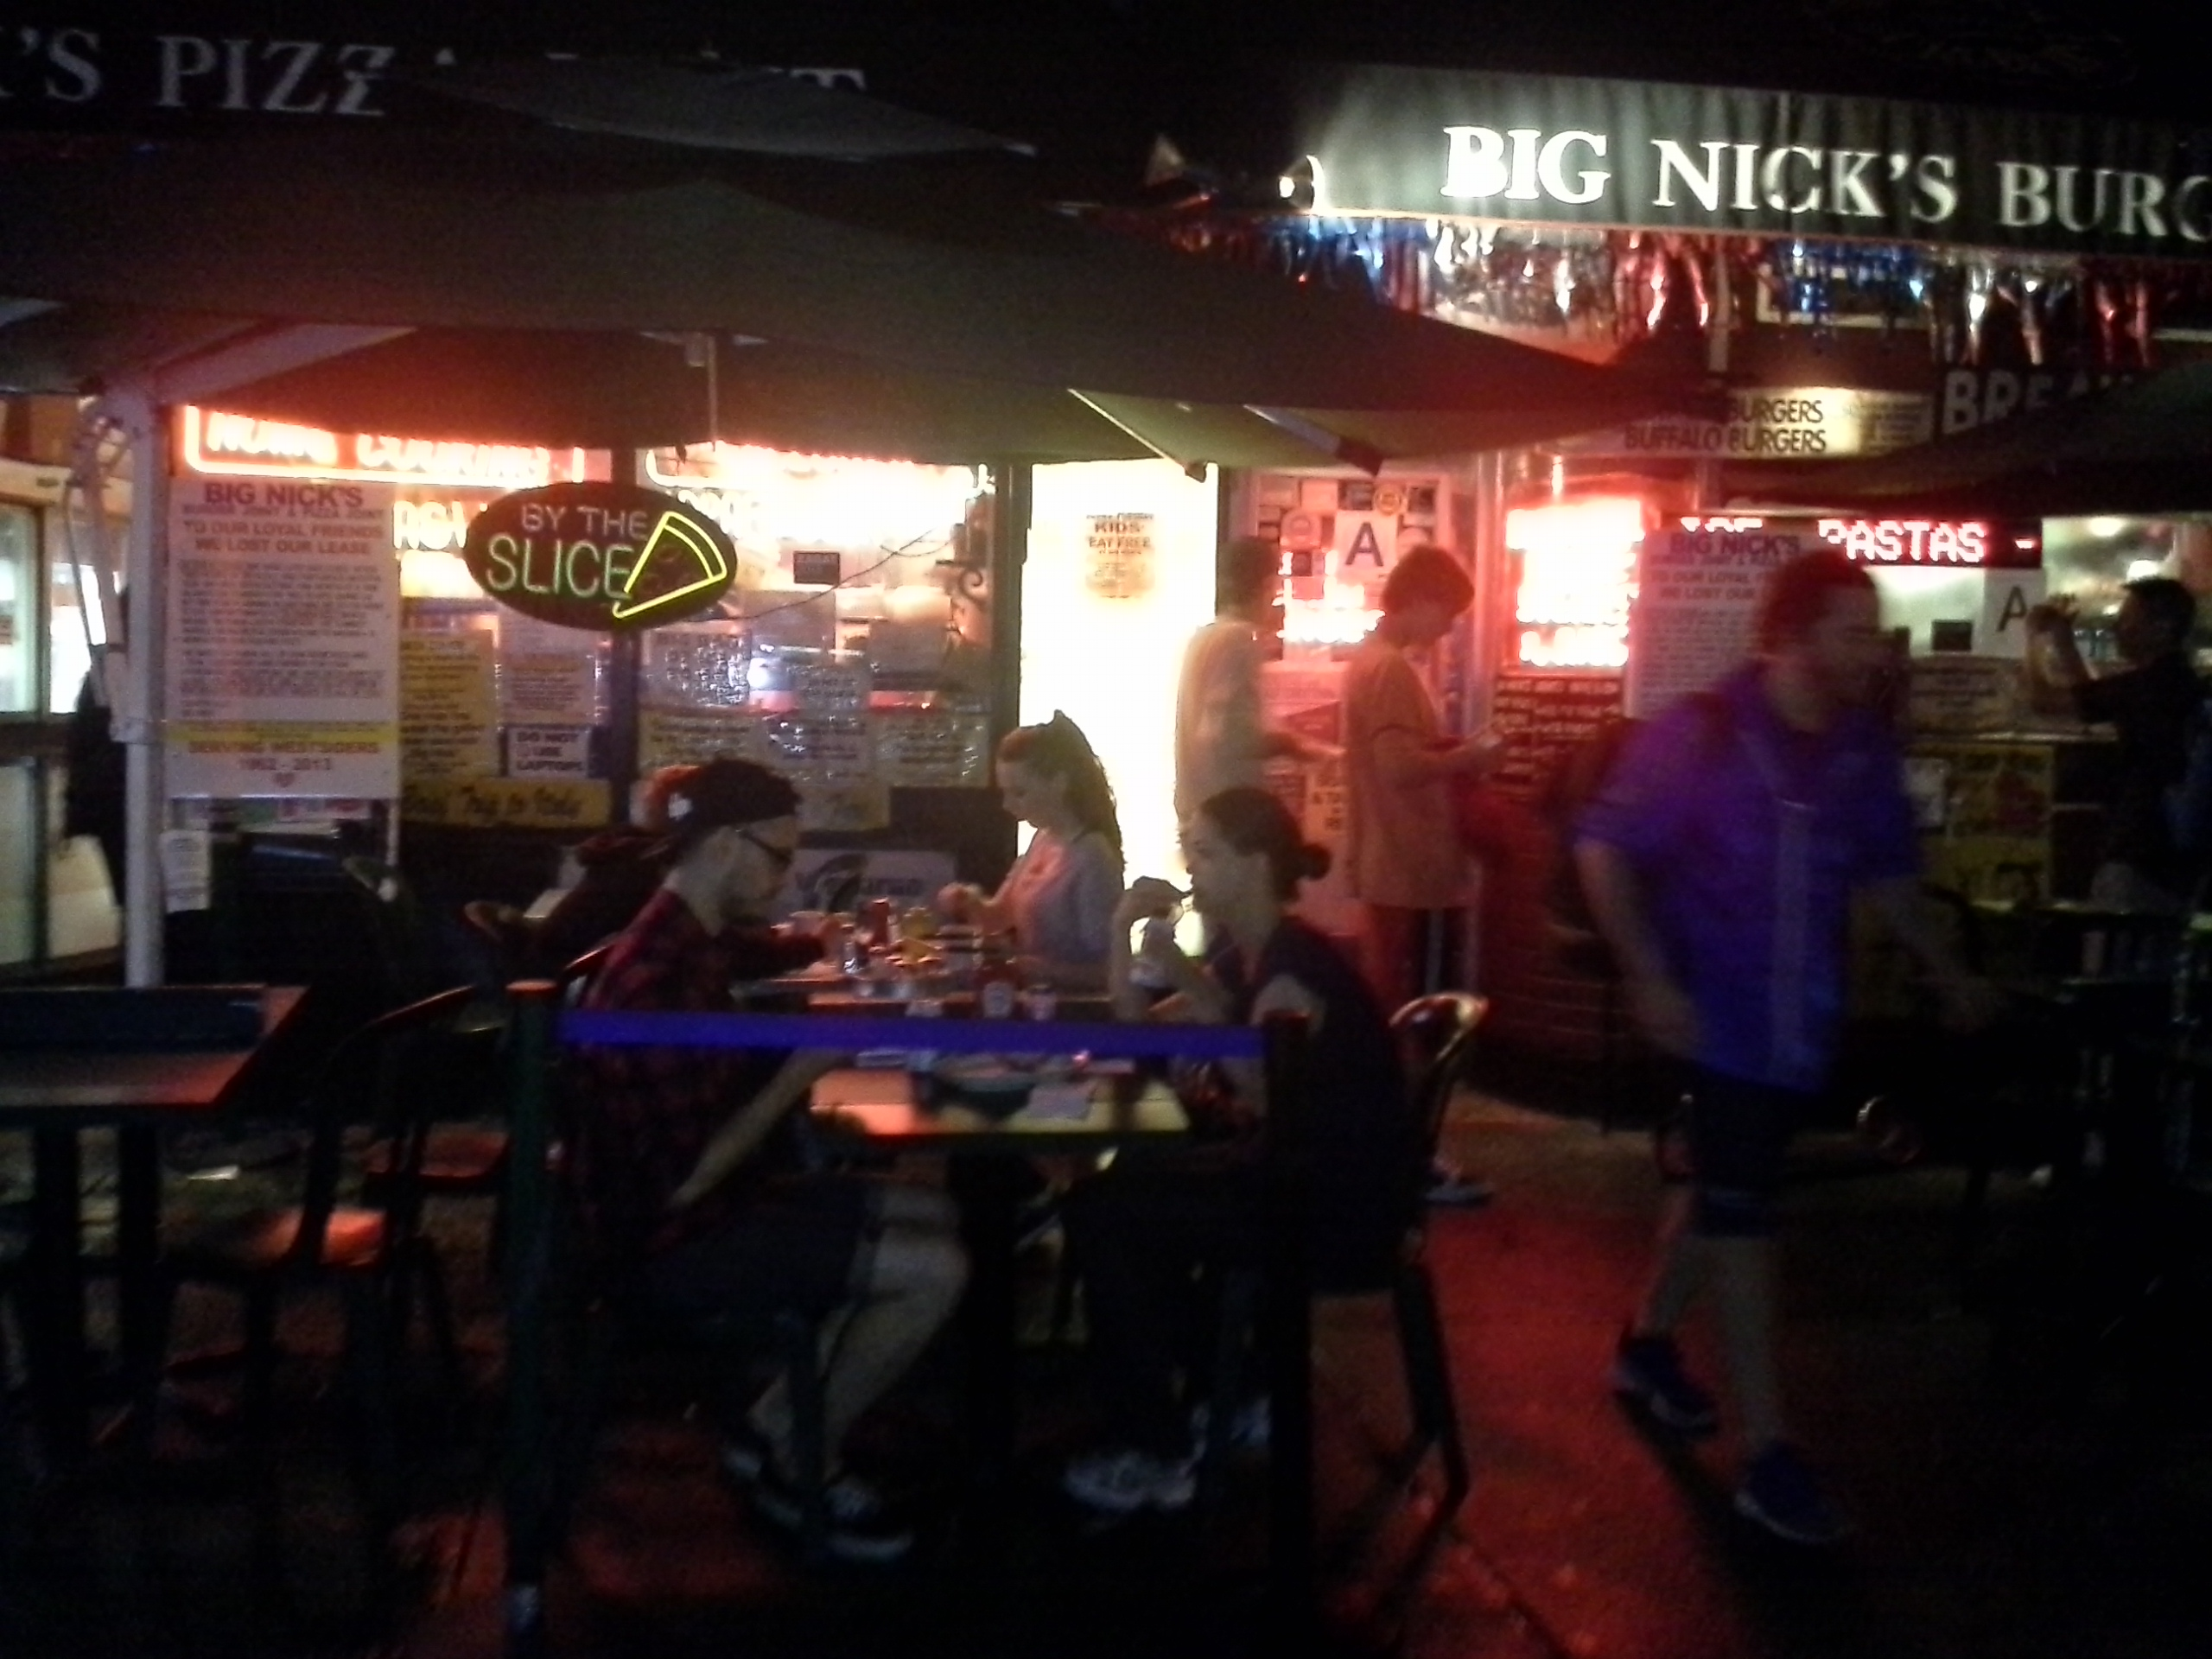 The final night of operation for Big Nick's Burger Joint & Pizza Joint.